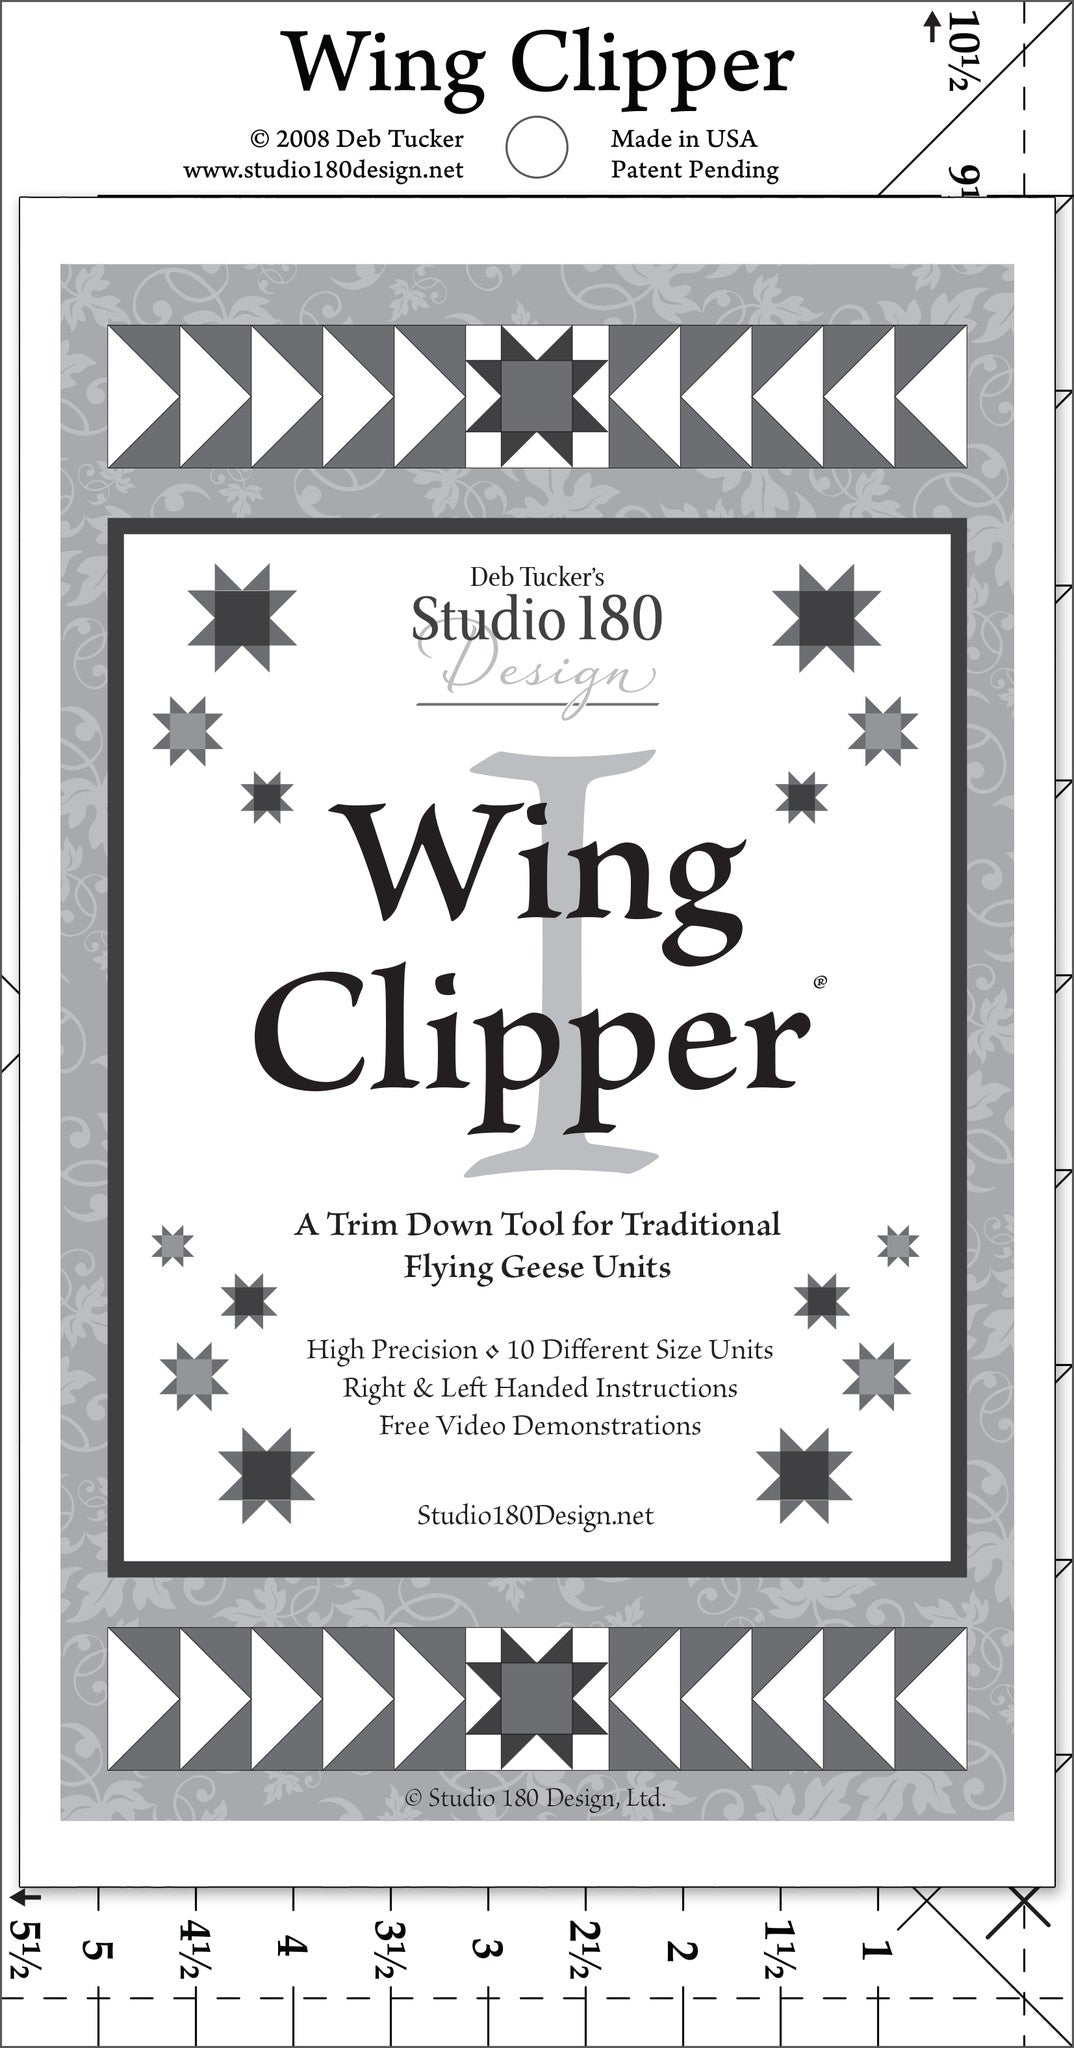 trim down tool for Flying Geese Units Wing Clipper quilting tool